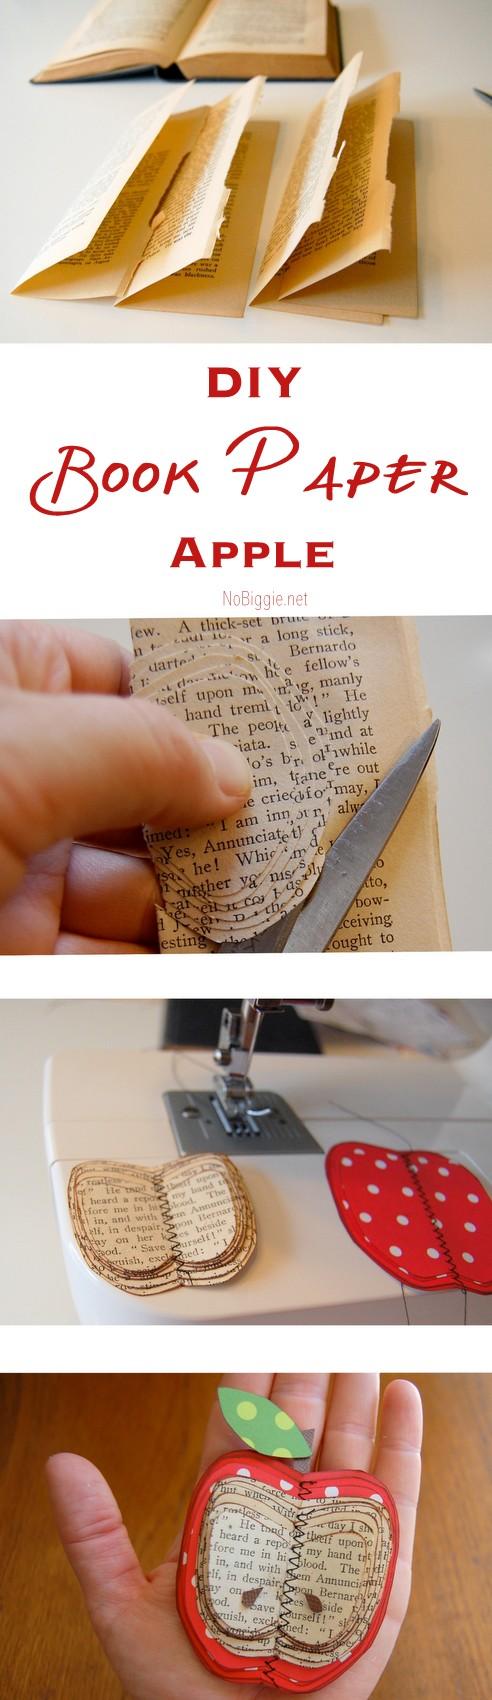 DIY book paper apple | make this fun paper craft with cool vintage book paper | NoBiggie.net